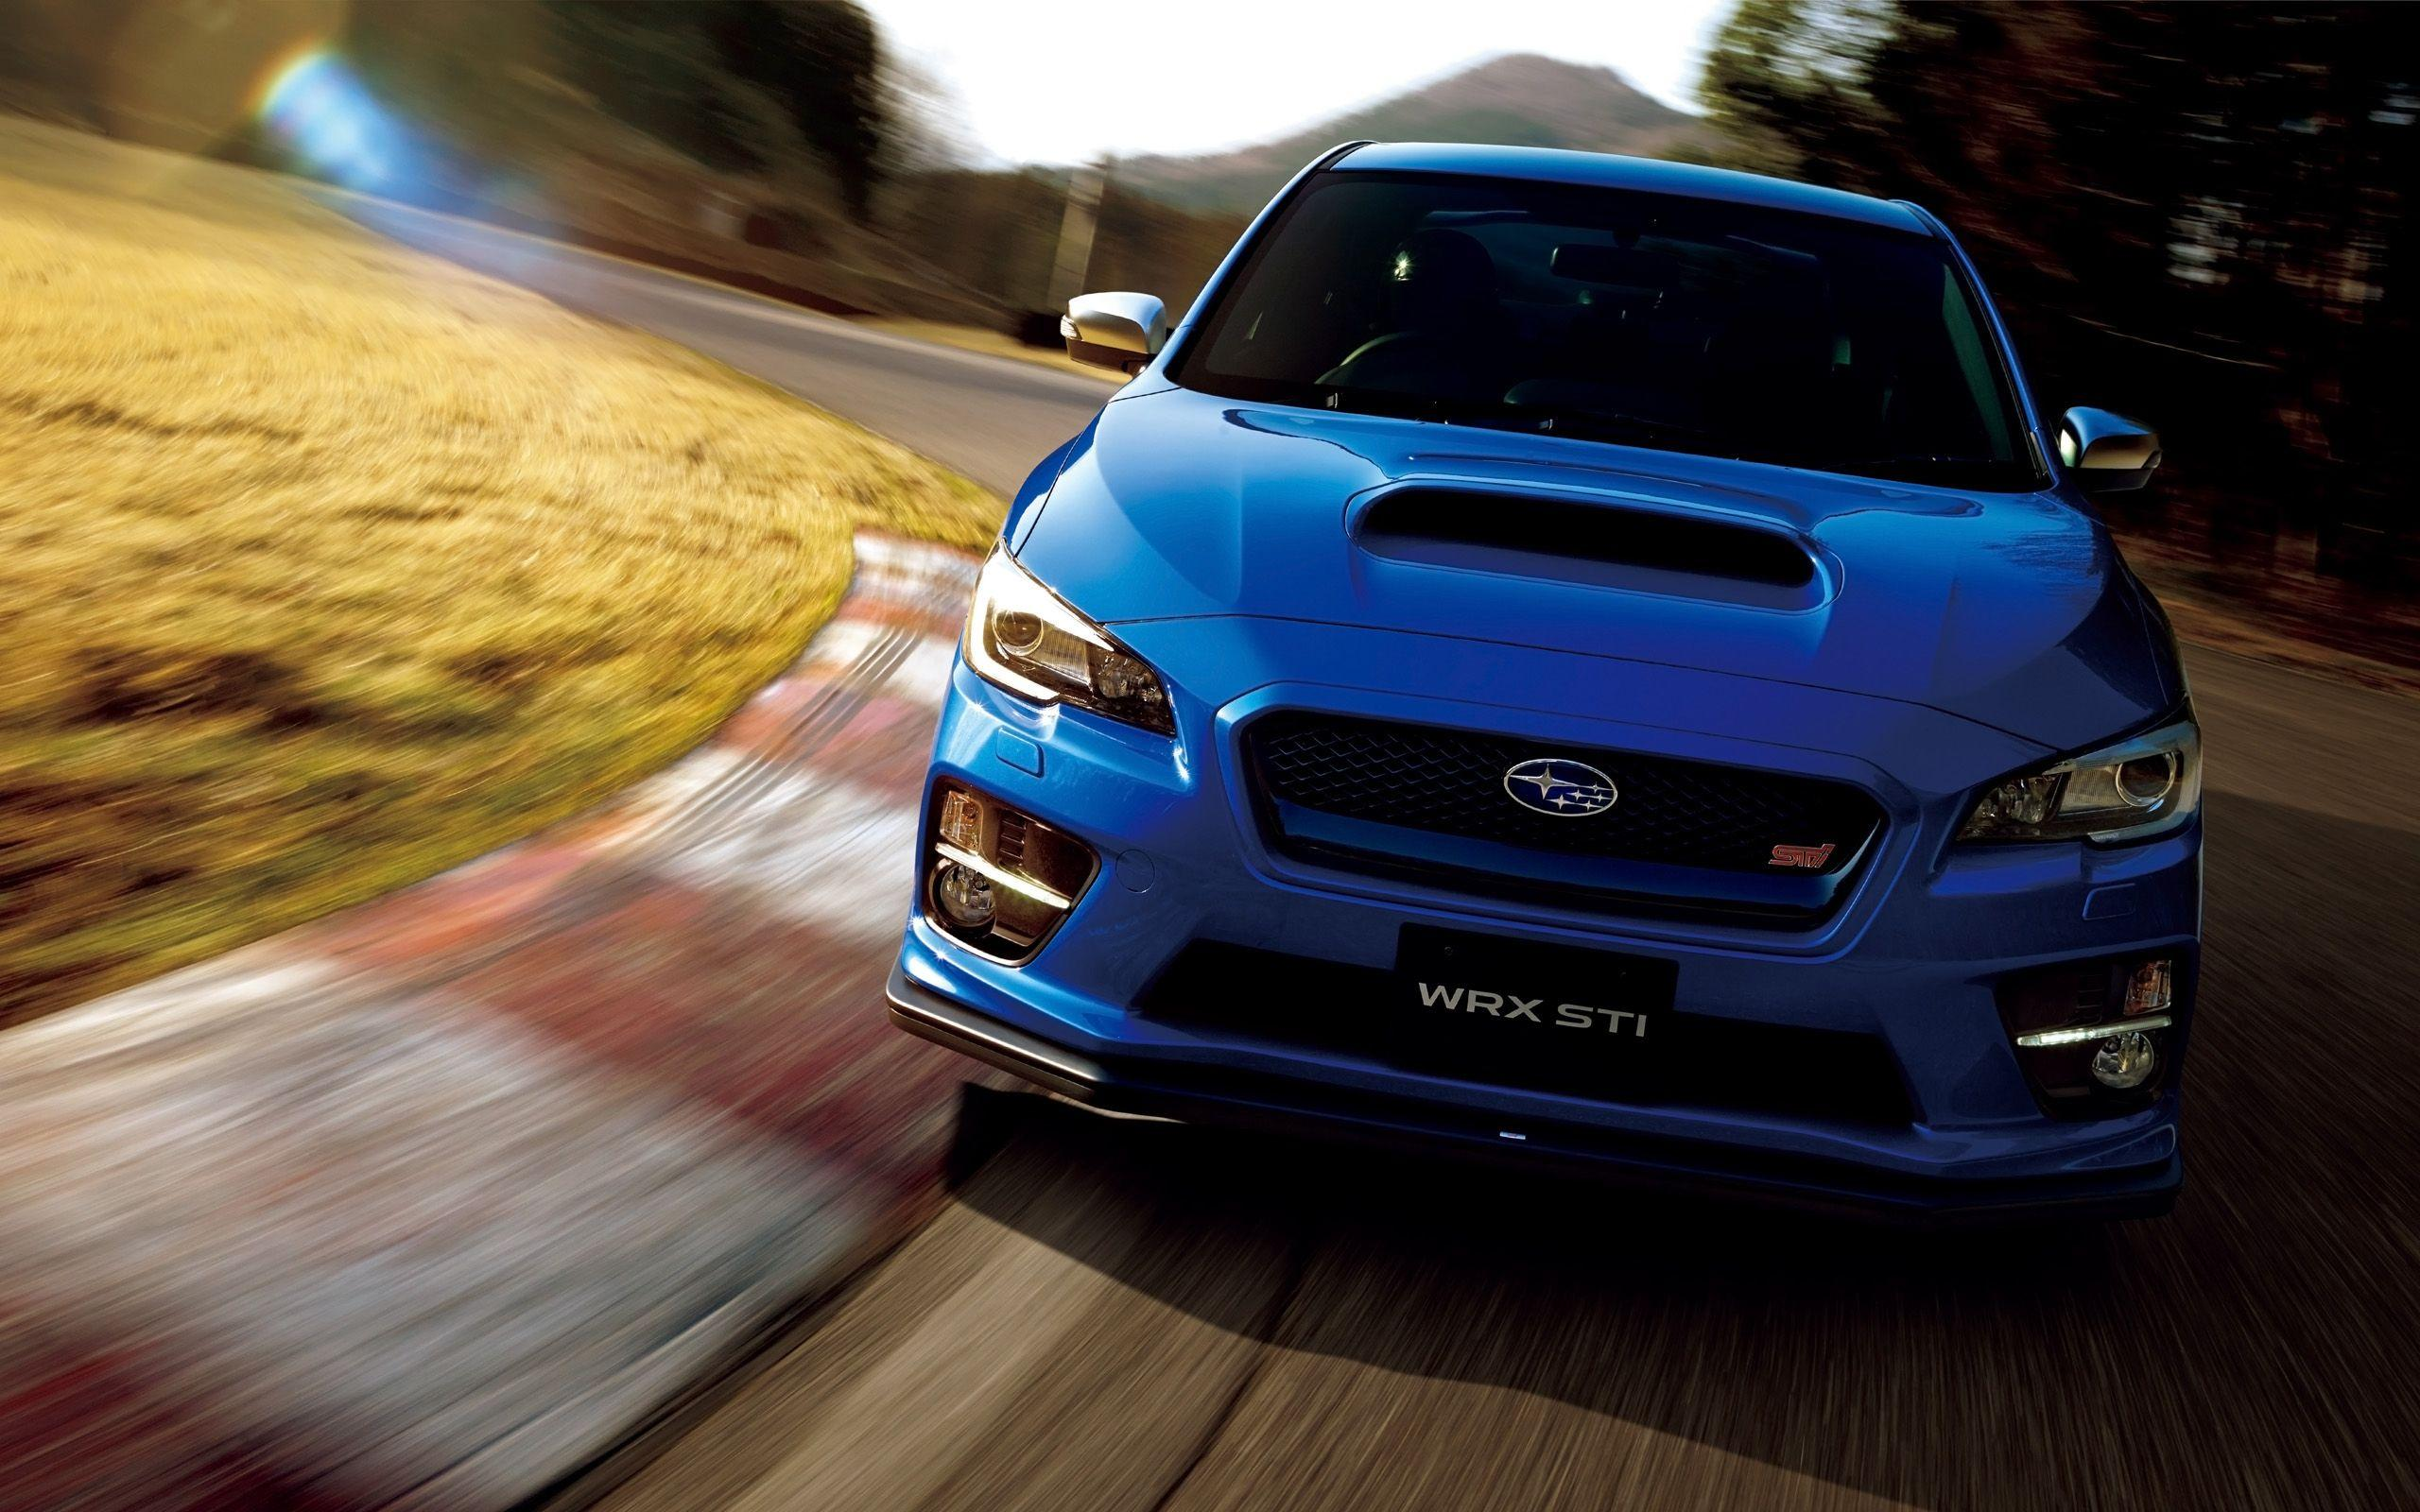 2015 Subaru WRX STI Japan Wallpaper | HD Car Wallpapers | ID #4770